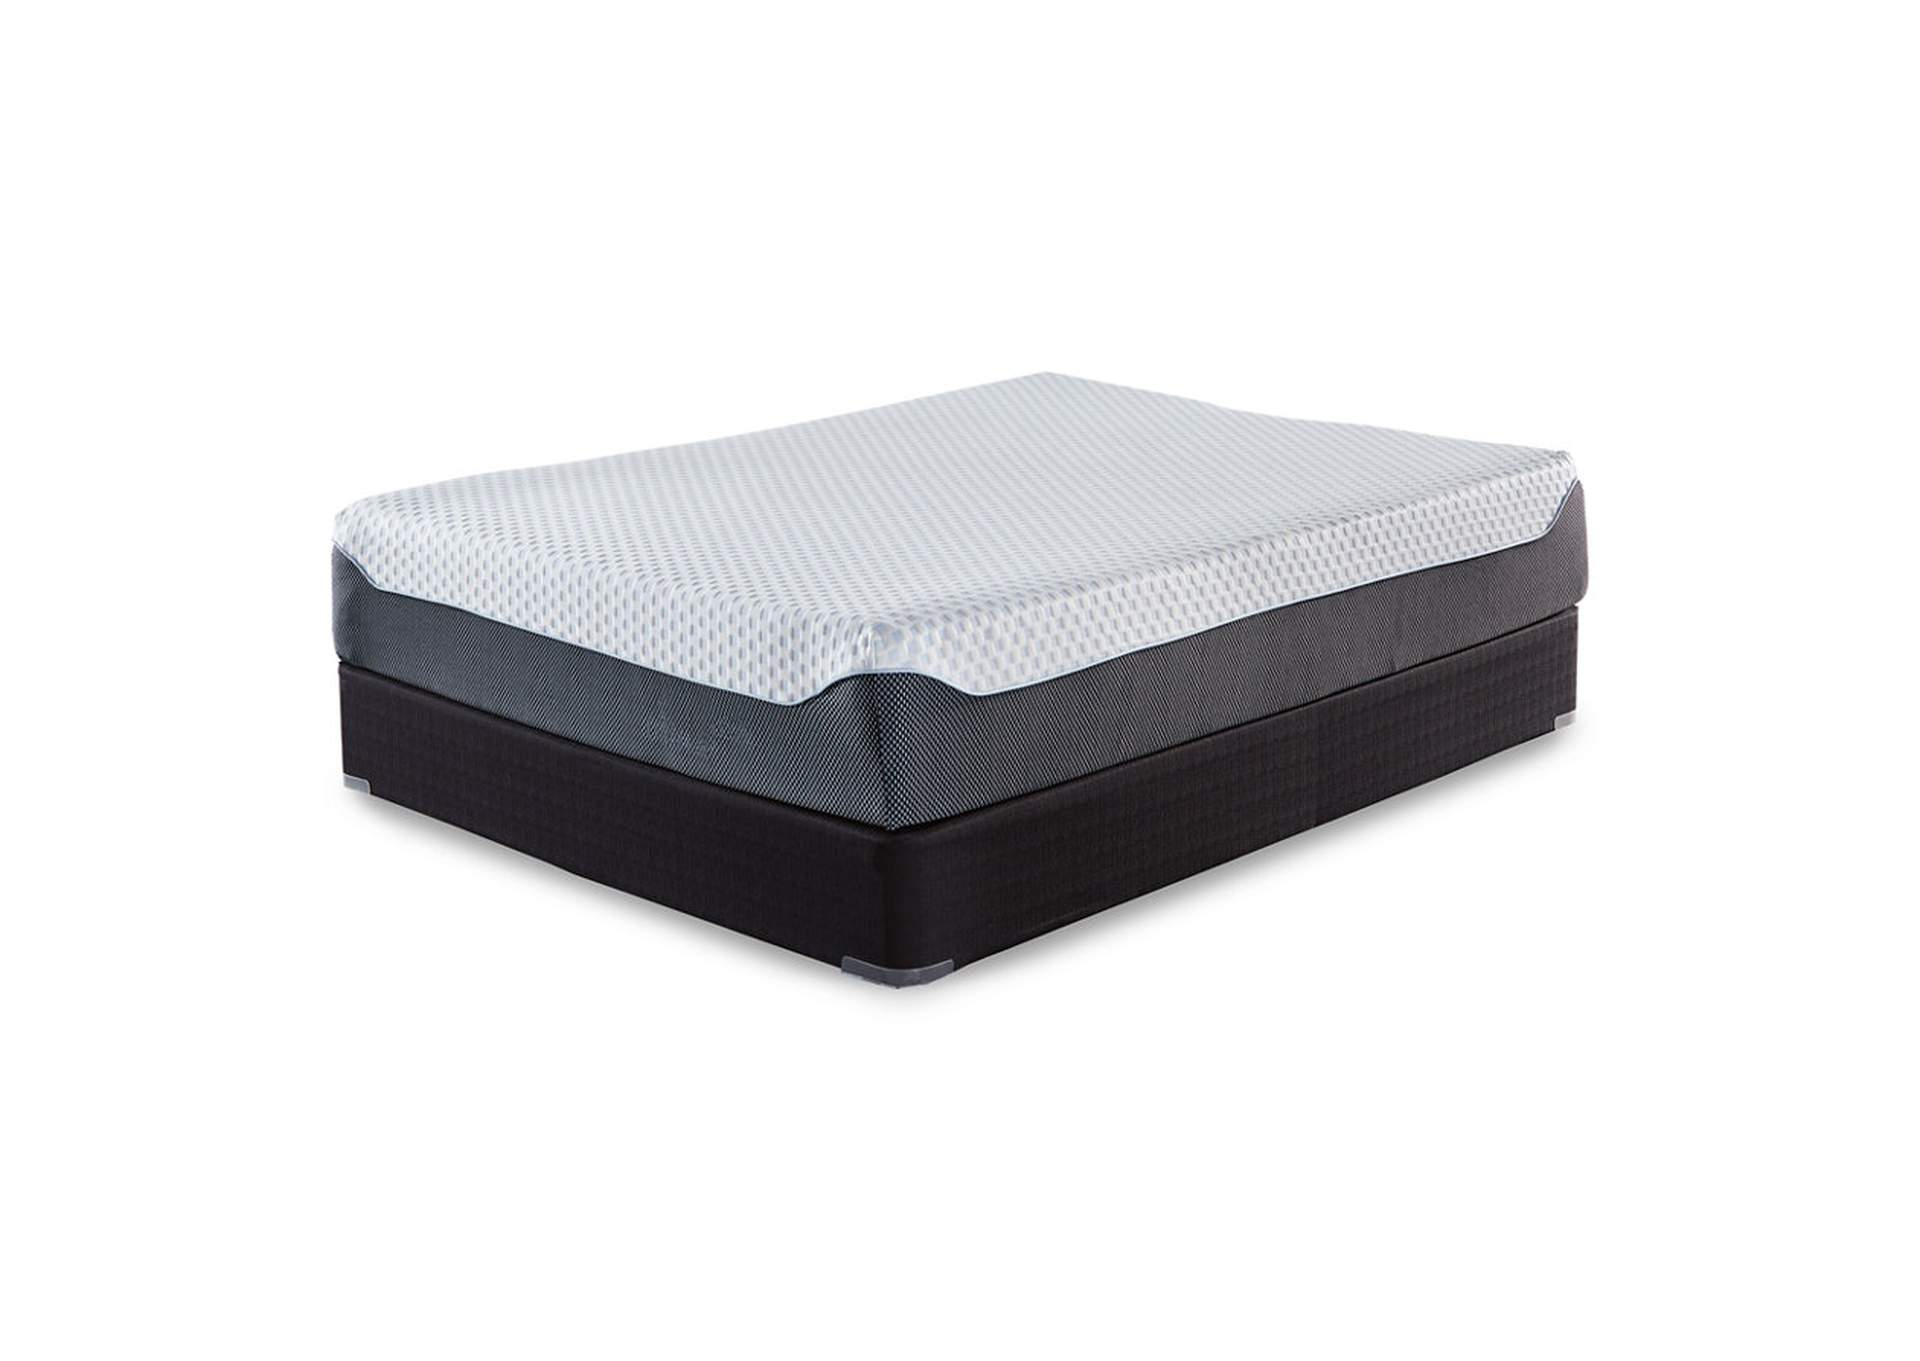 12 Inch Chime Elite Memory Foam Full Mattress,Sierra Sleep by Ashley